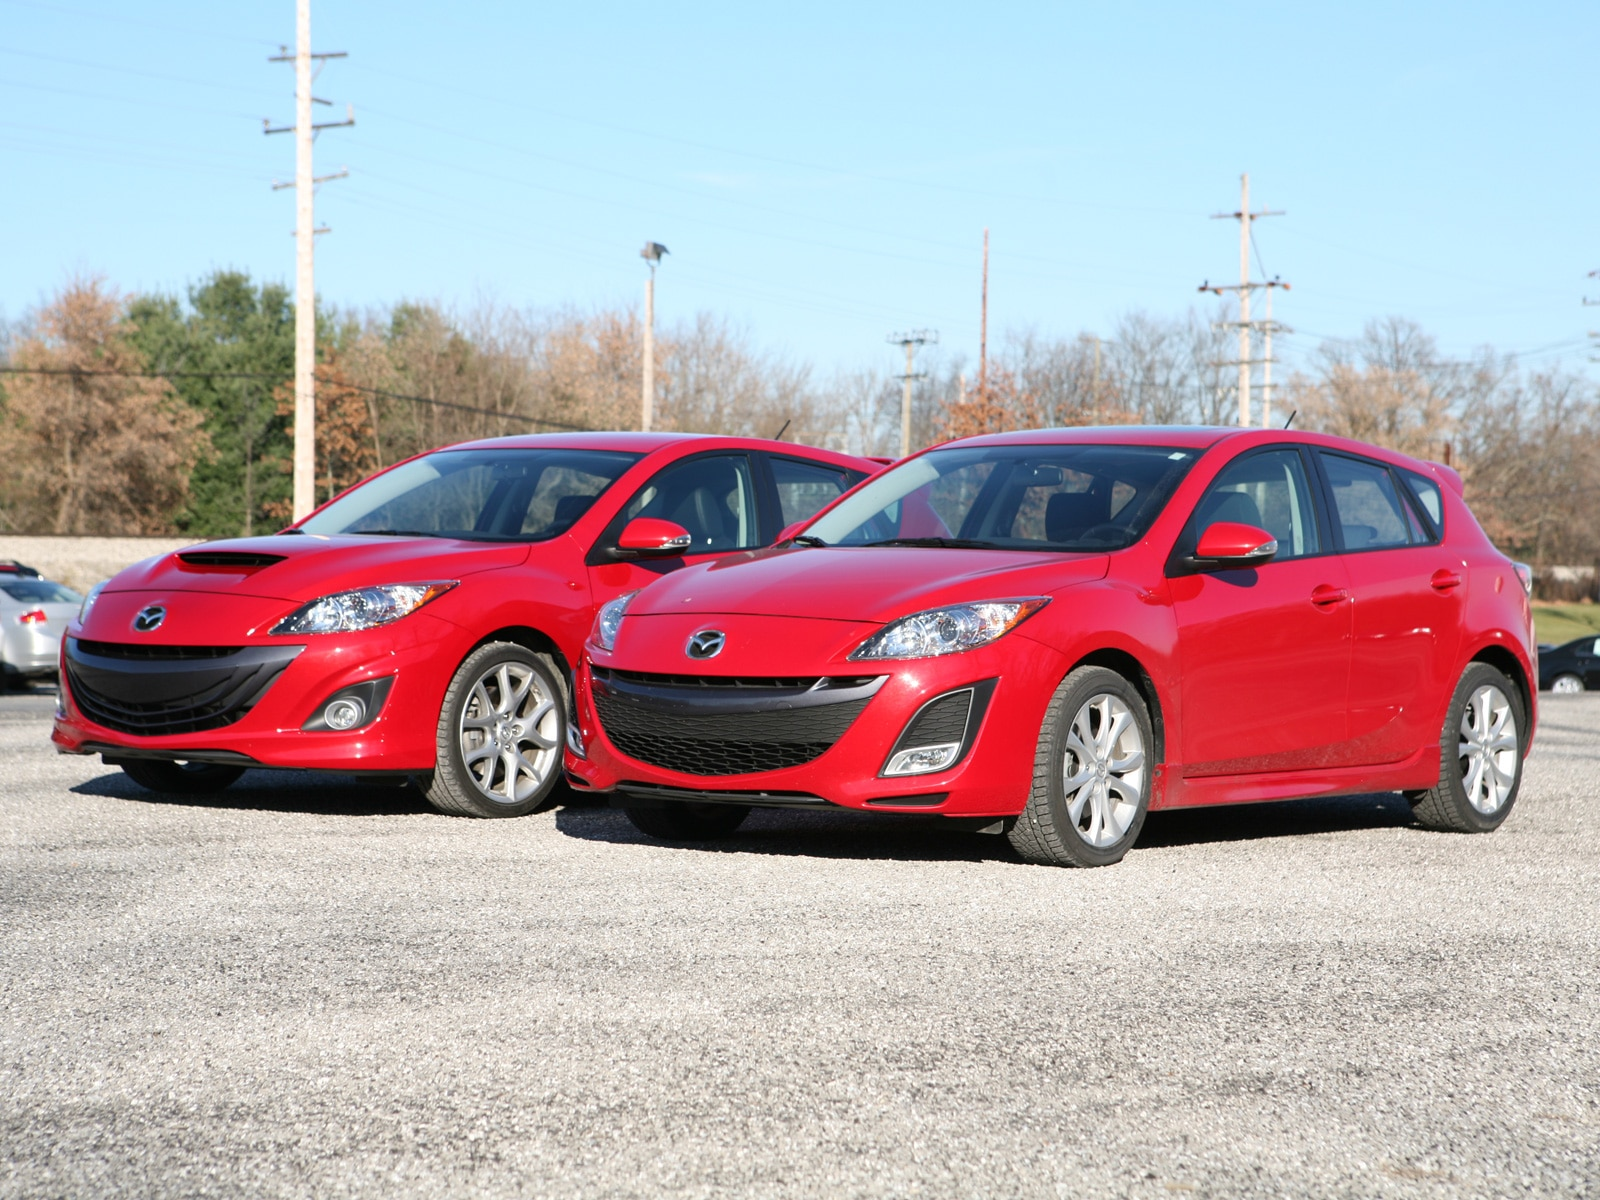 2010 mazda3 s sport 5 door march 2010 four seasons. Black Bedroom Furniture Sets. Home Design Ideas